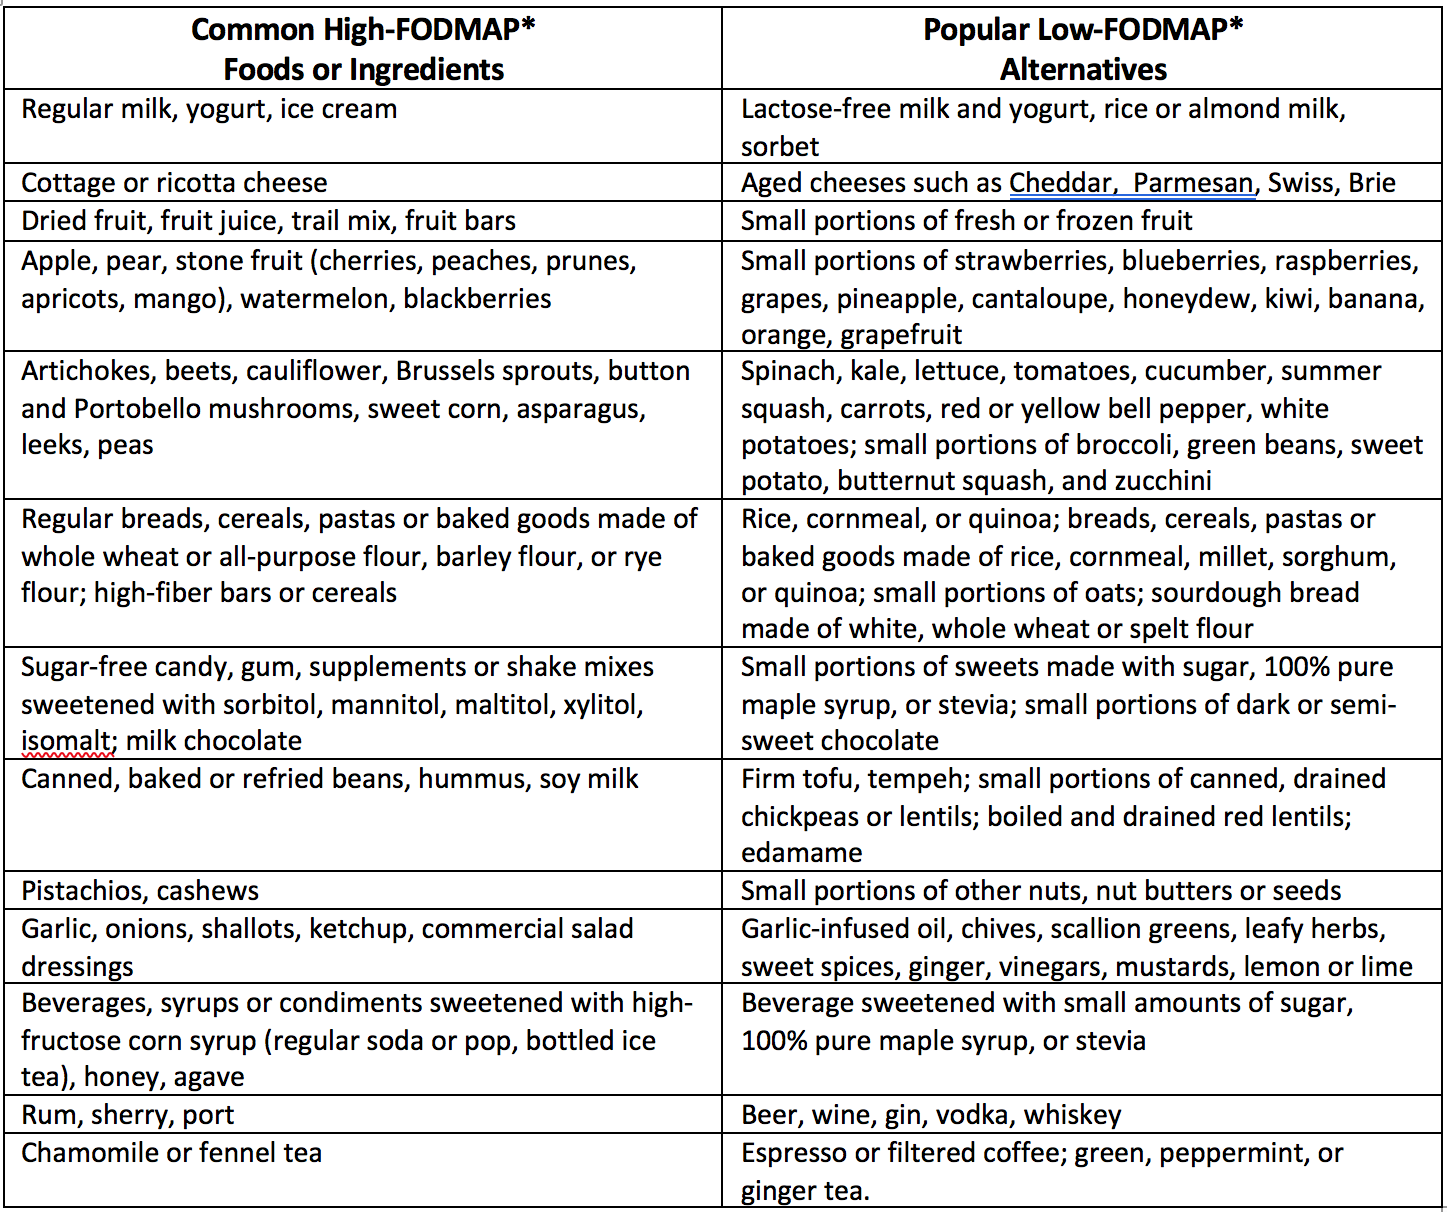 Click here for more discussion  about this chart and high- and low-FODMAP foods.